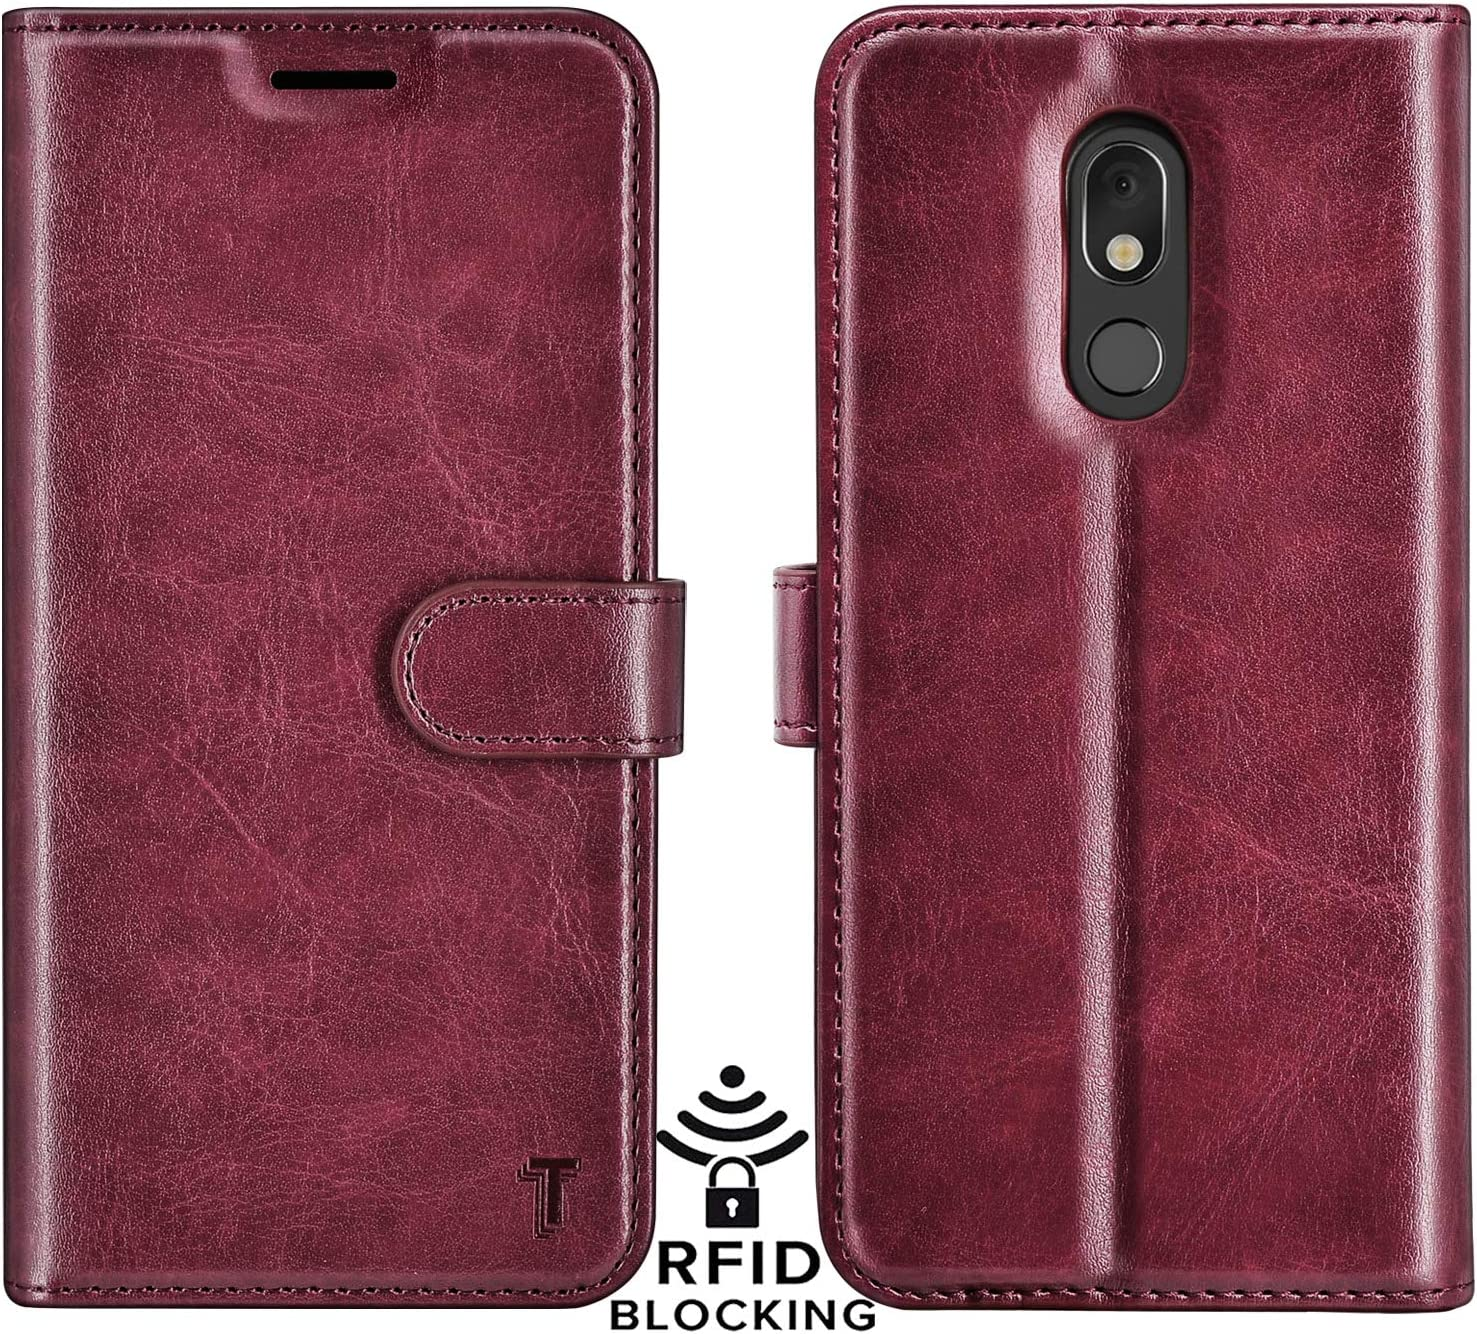 Njjex LG Stylo 5 Case, LG Stylo 5 Wallet Case, Stylo 5V/Stylo 5X/Stylo 5 Plus Case, RFID Blocking PU Leather Folio Flip ID Credit Card Slots Holder [Kickstand] Magnetic Closure Phone Cover [Wine Red]